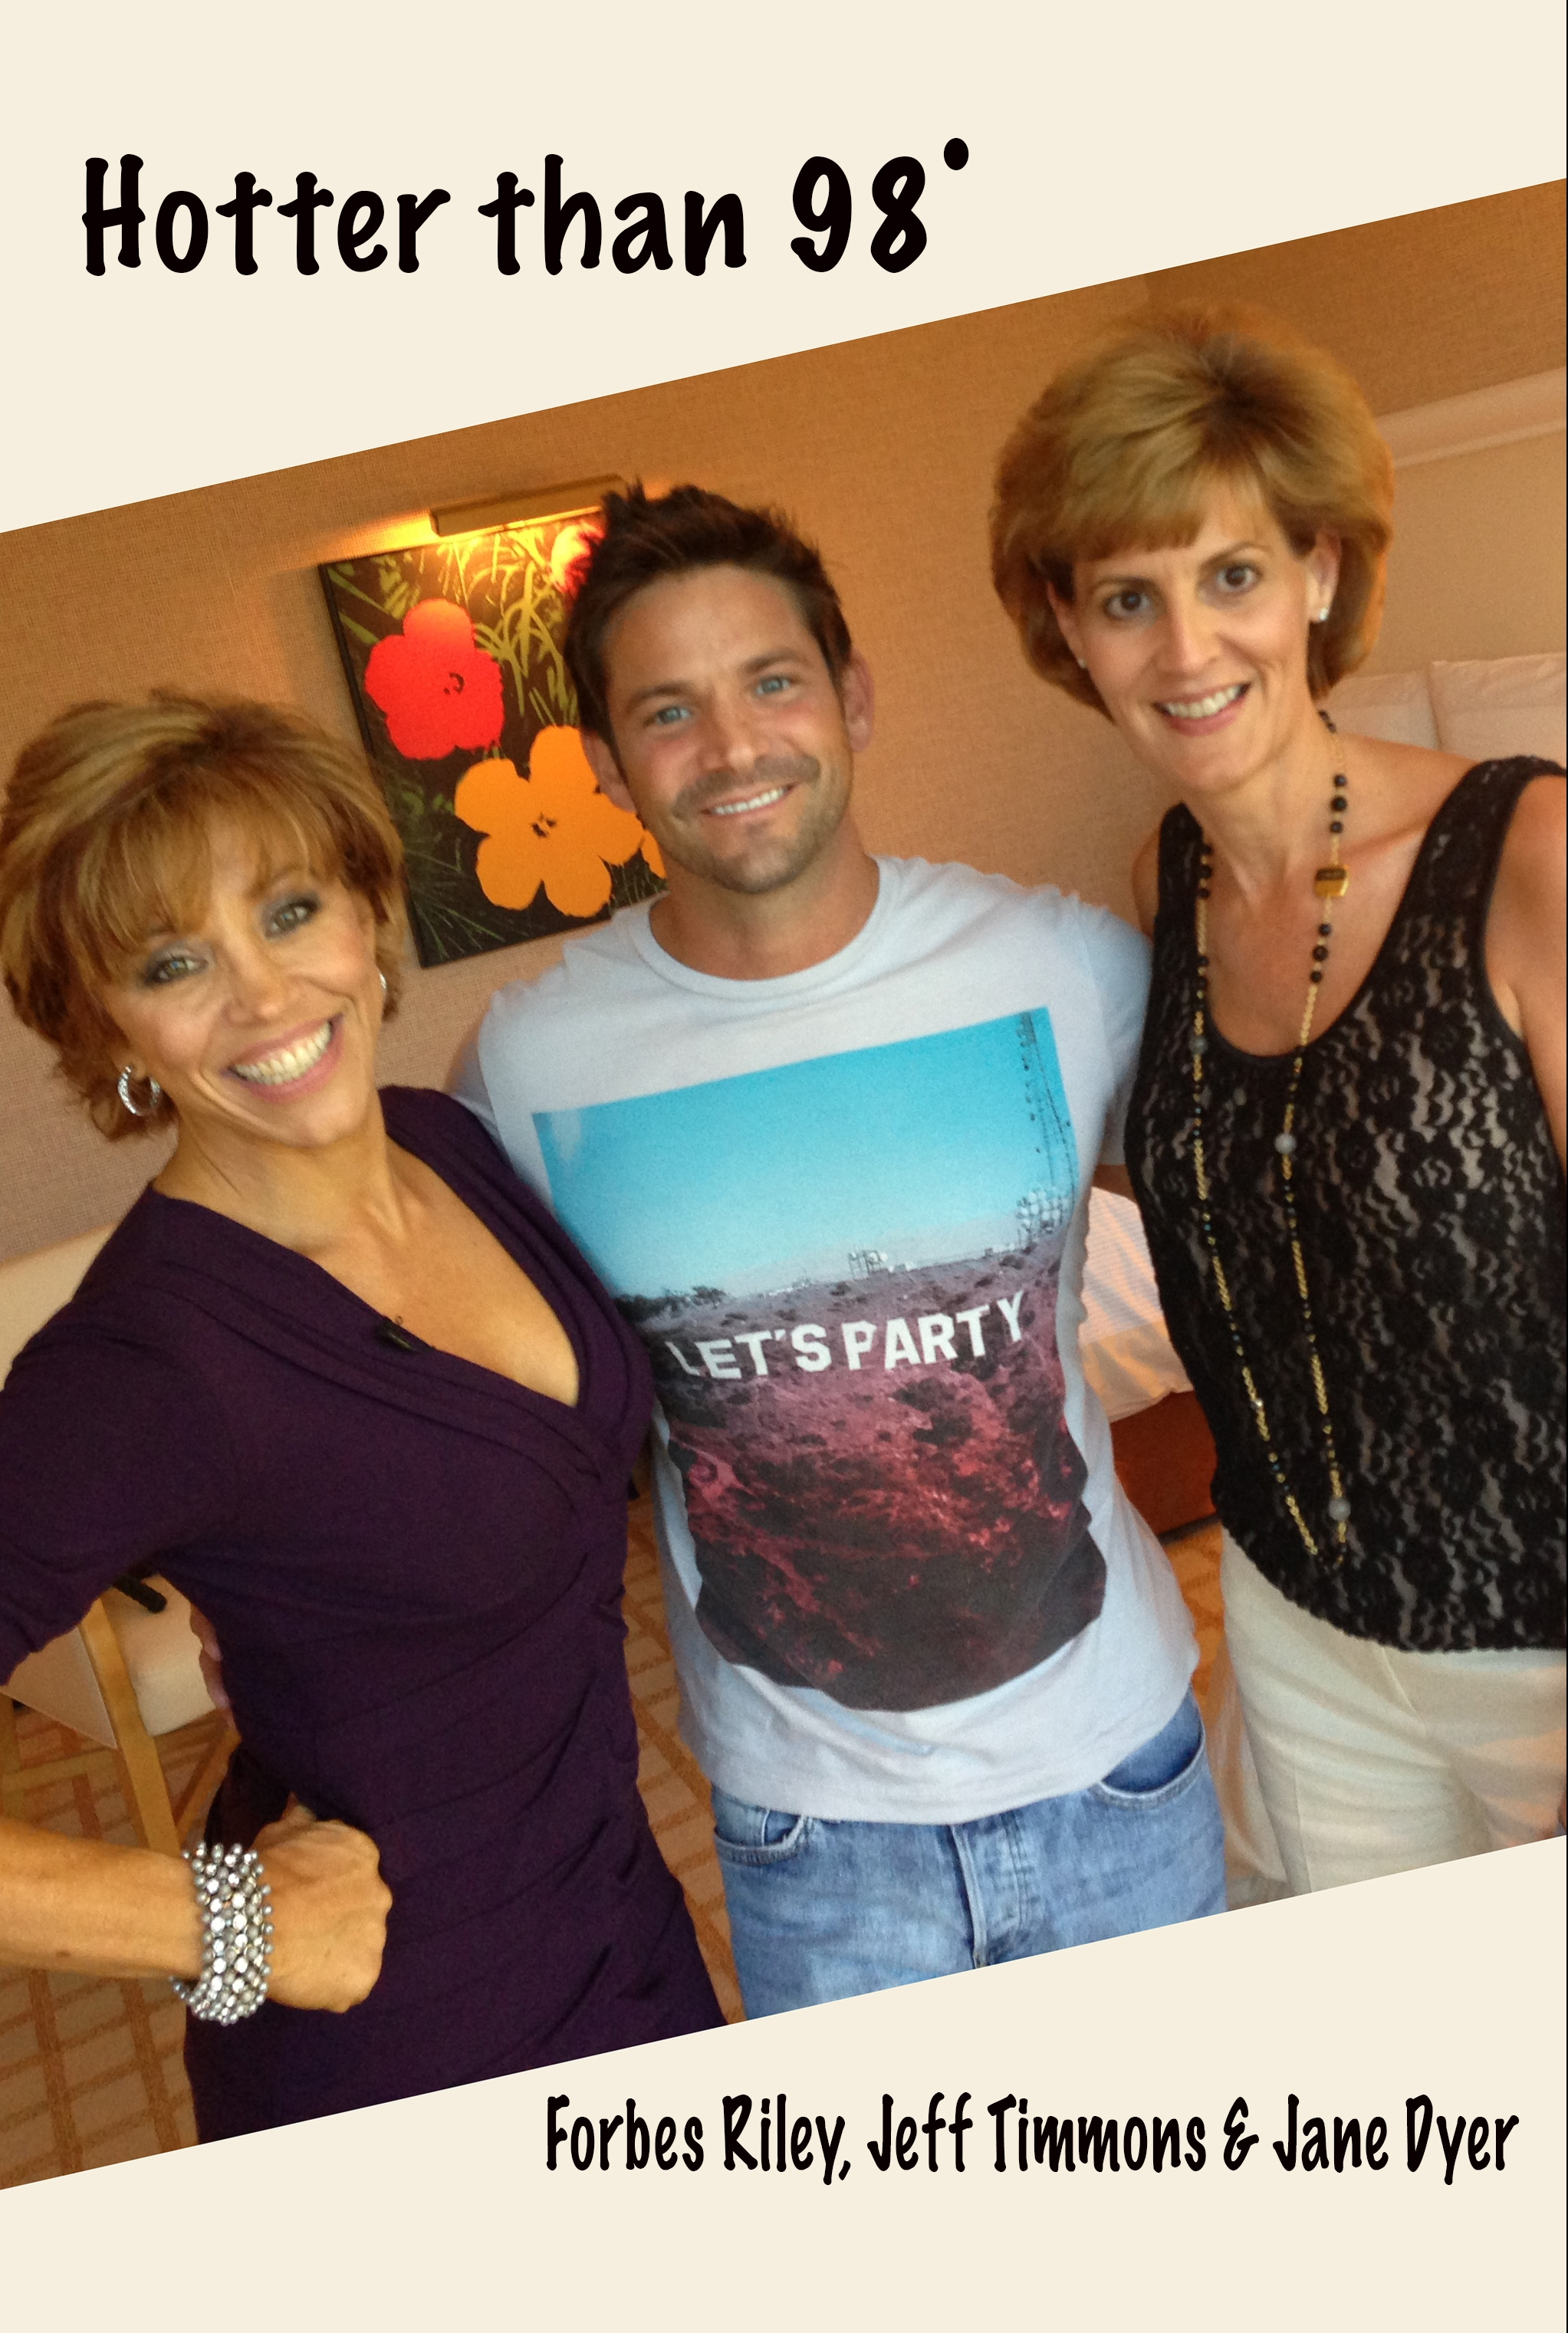 Forbes, Jeff Timmons, Jane Dyer